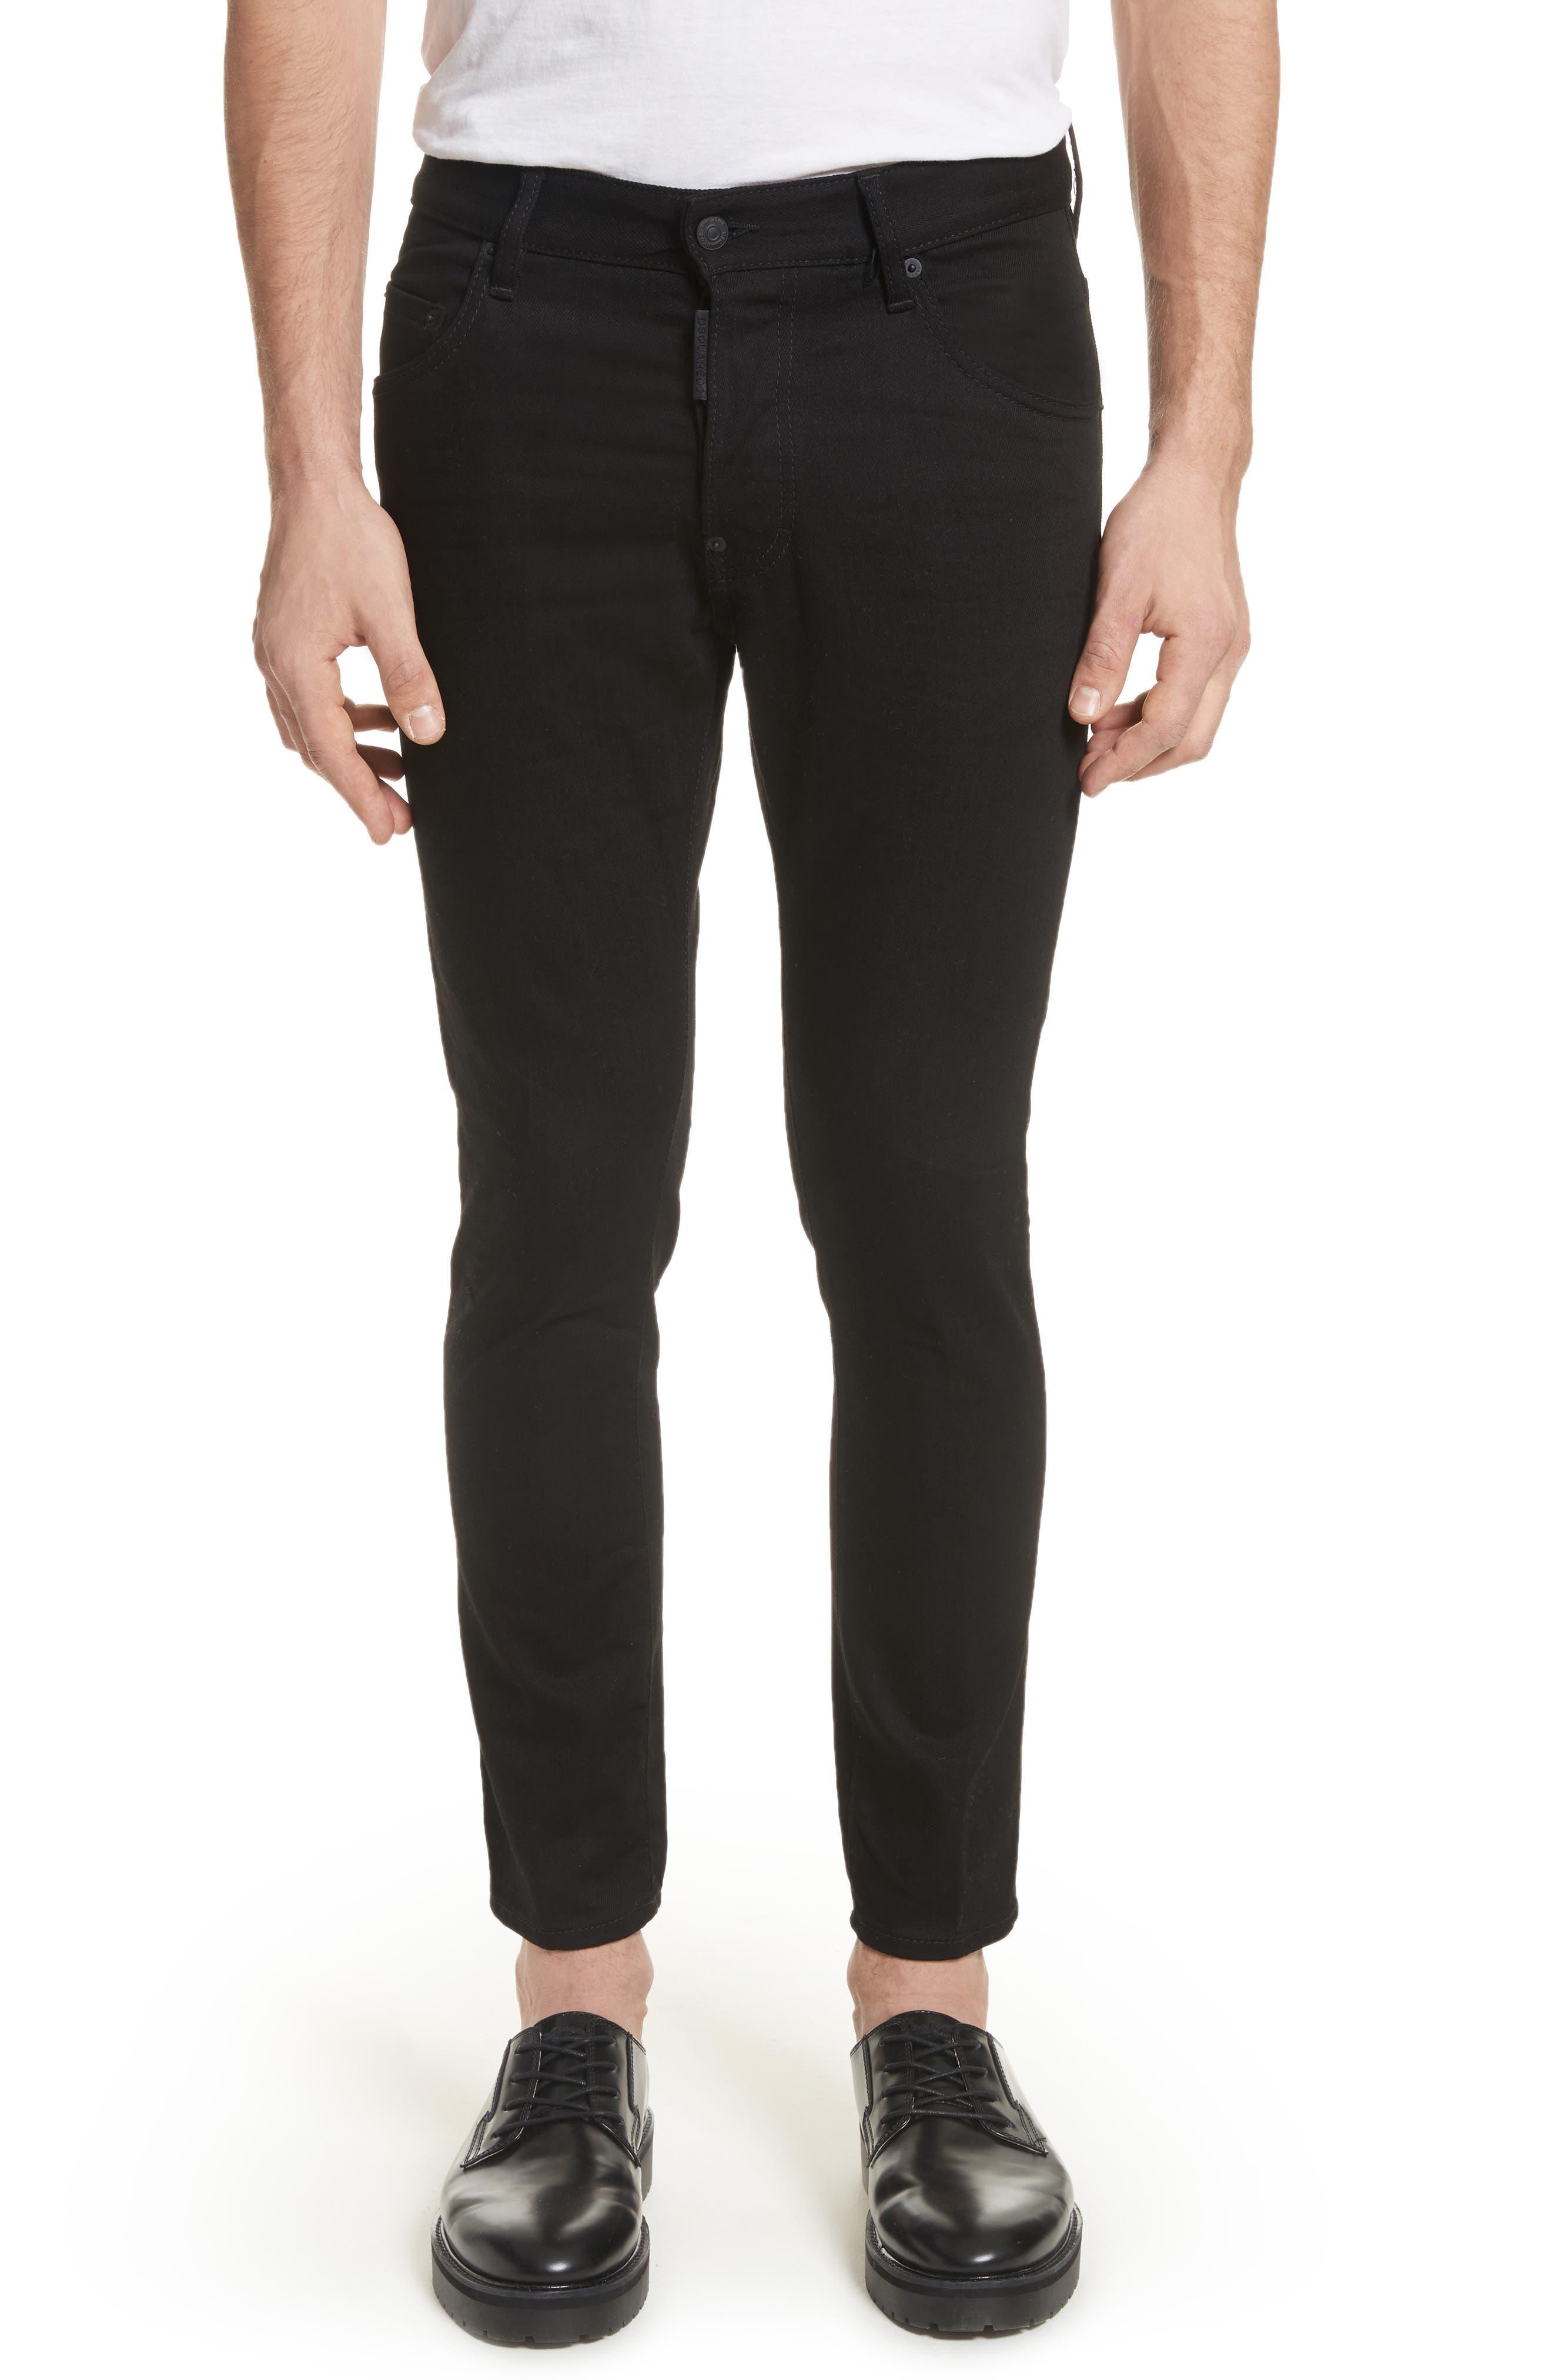 Alternate Image 1 Selected - Dsquared2 Black Bull Skater Jeans